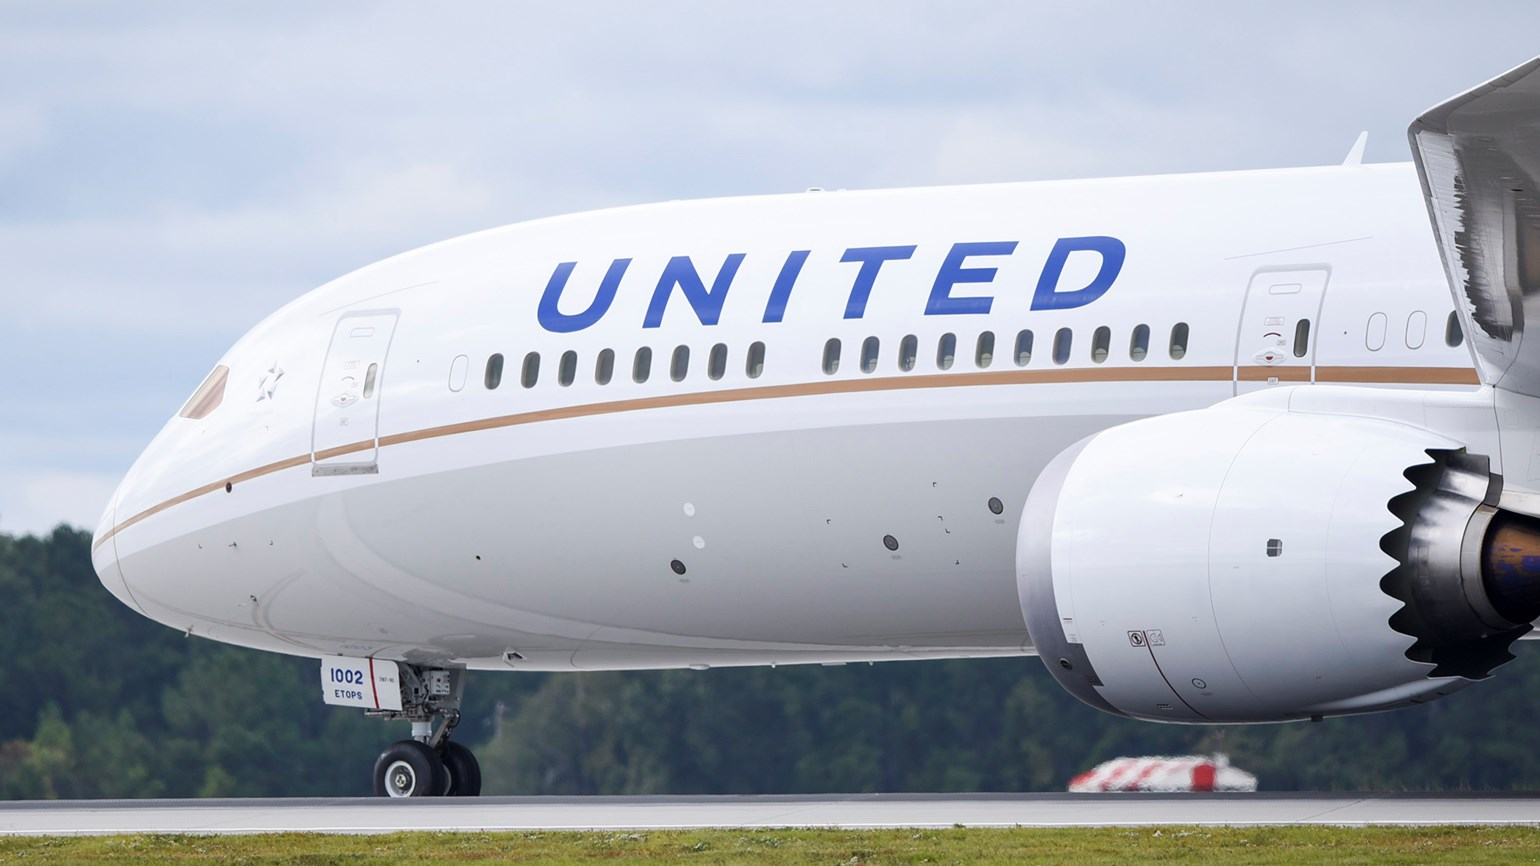 United to use 787-10 aircraft on six Europe routes